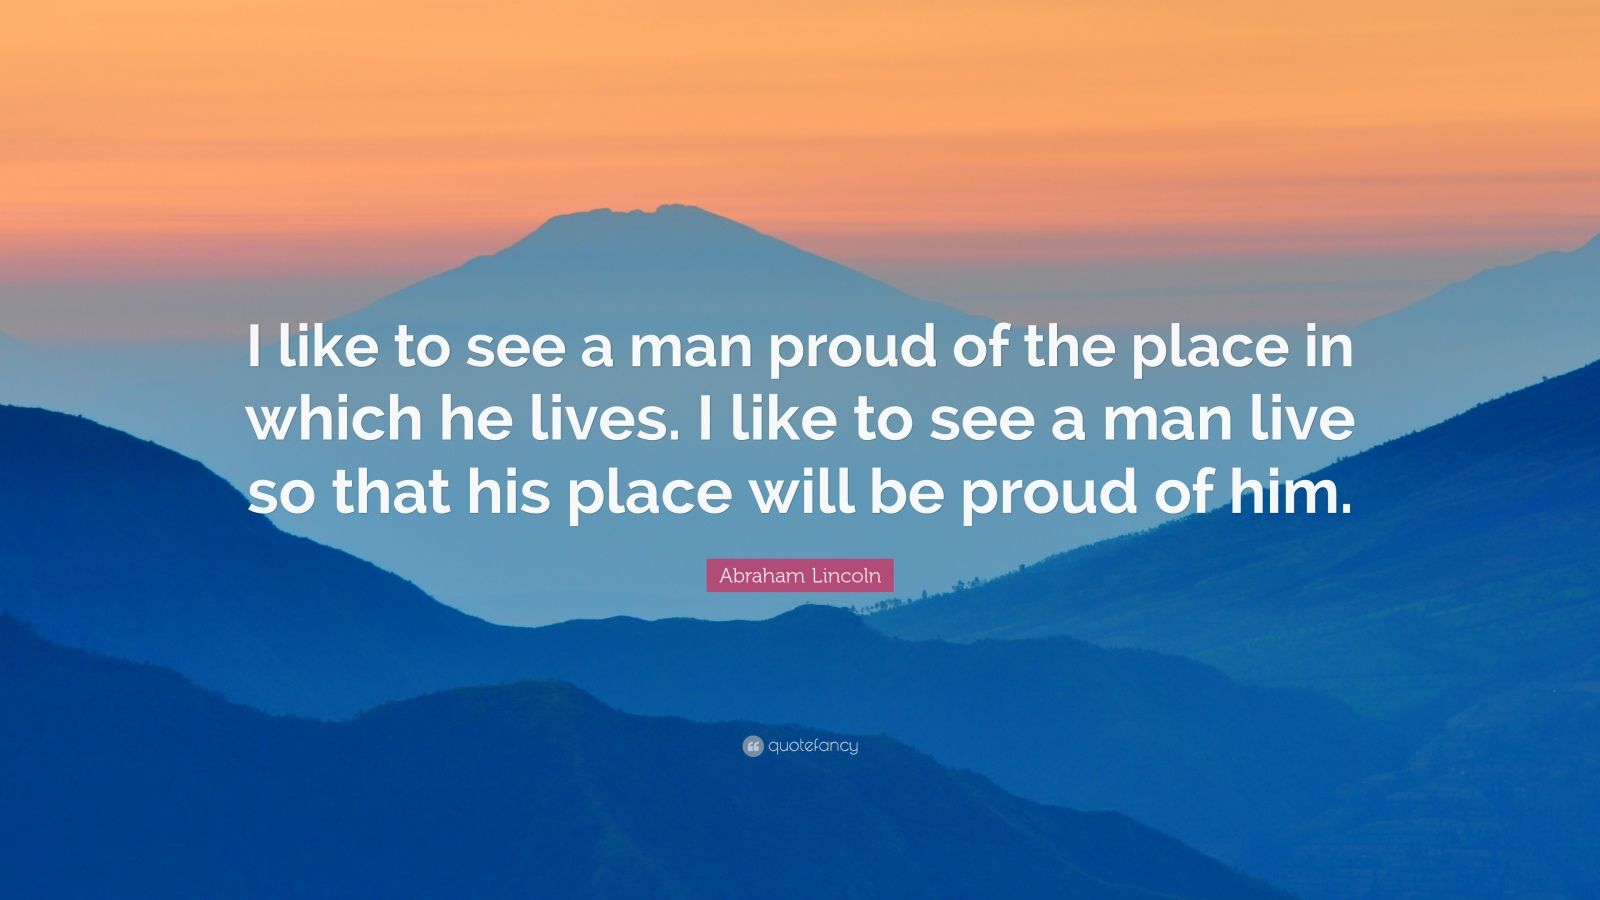 """Abraham Lincoln Quote: """"I like to see a man proud of the place in which he lives. I like to see a man live so that his place will be proud of him."""""""